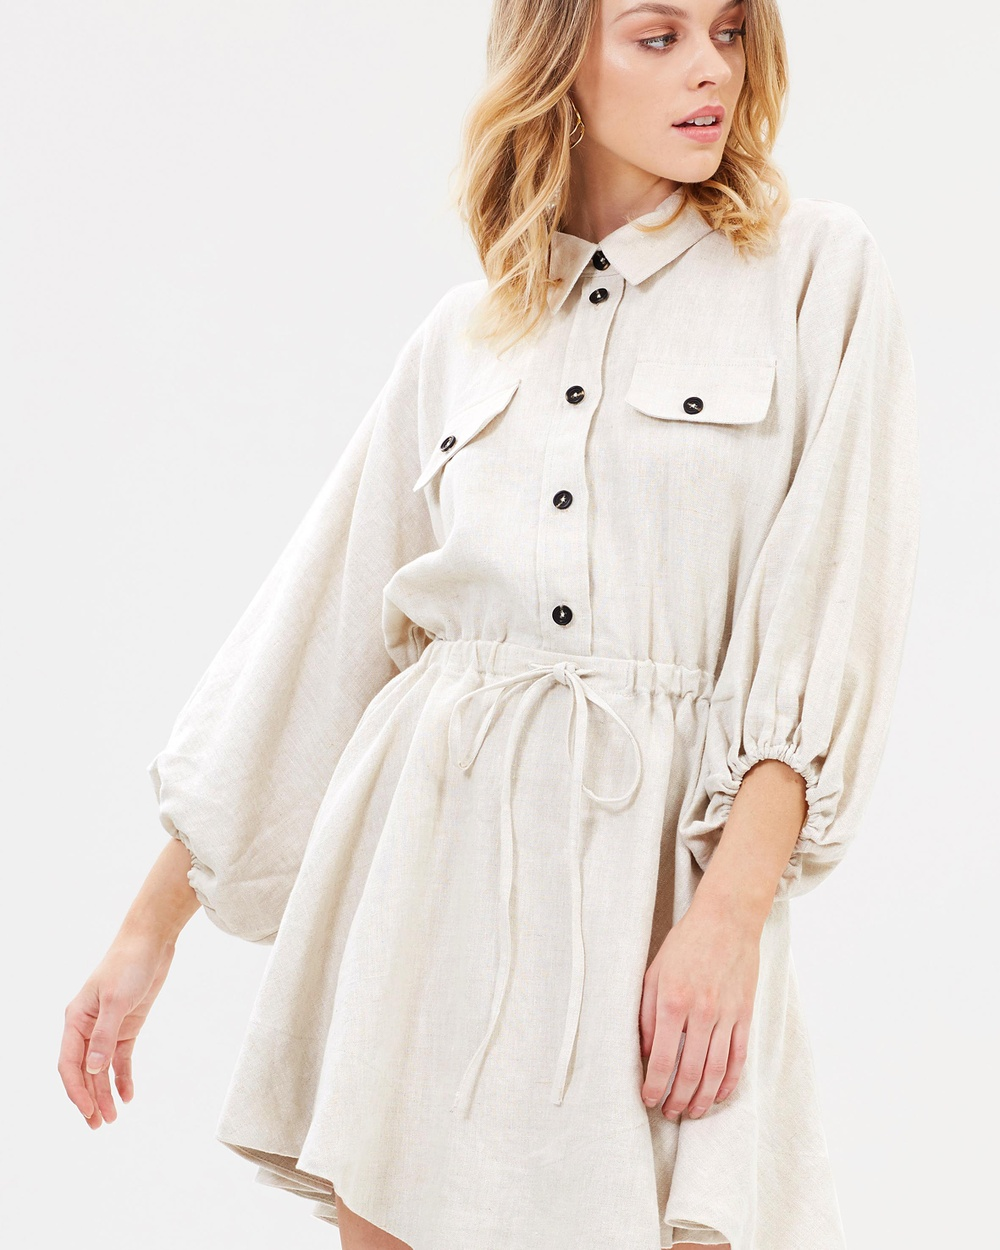 Shona Joy Linen Balloon Sleeve Shirt Mini Dress Dresses Natural Linen Balloon Sleeve Shirt Mini Dress